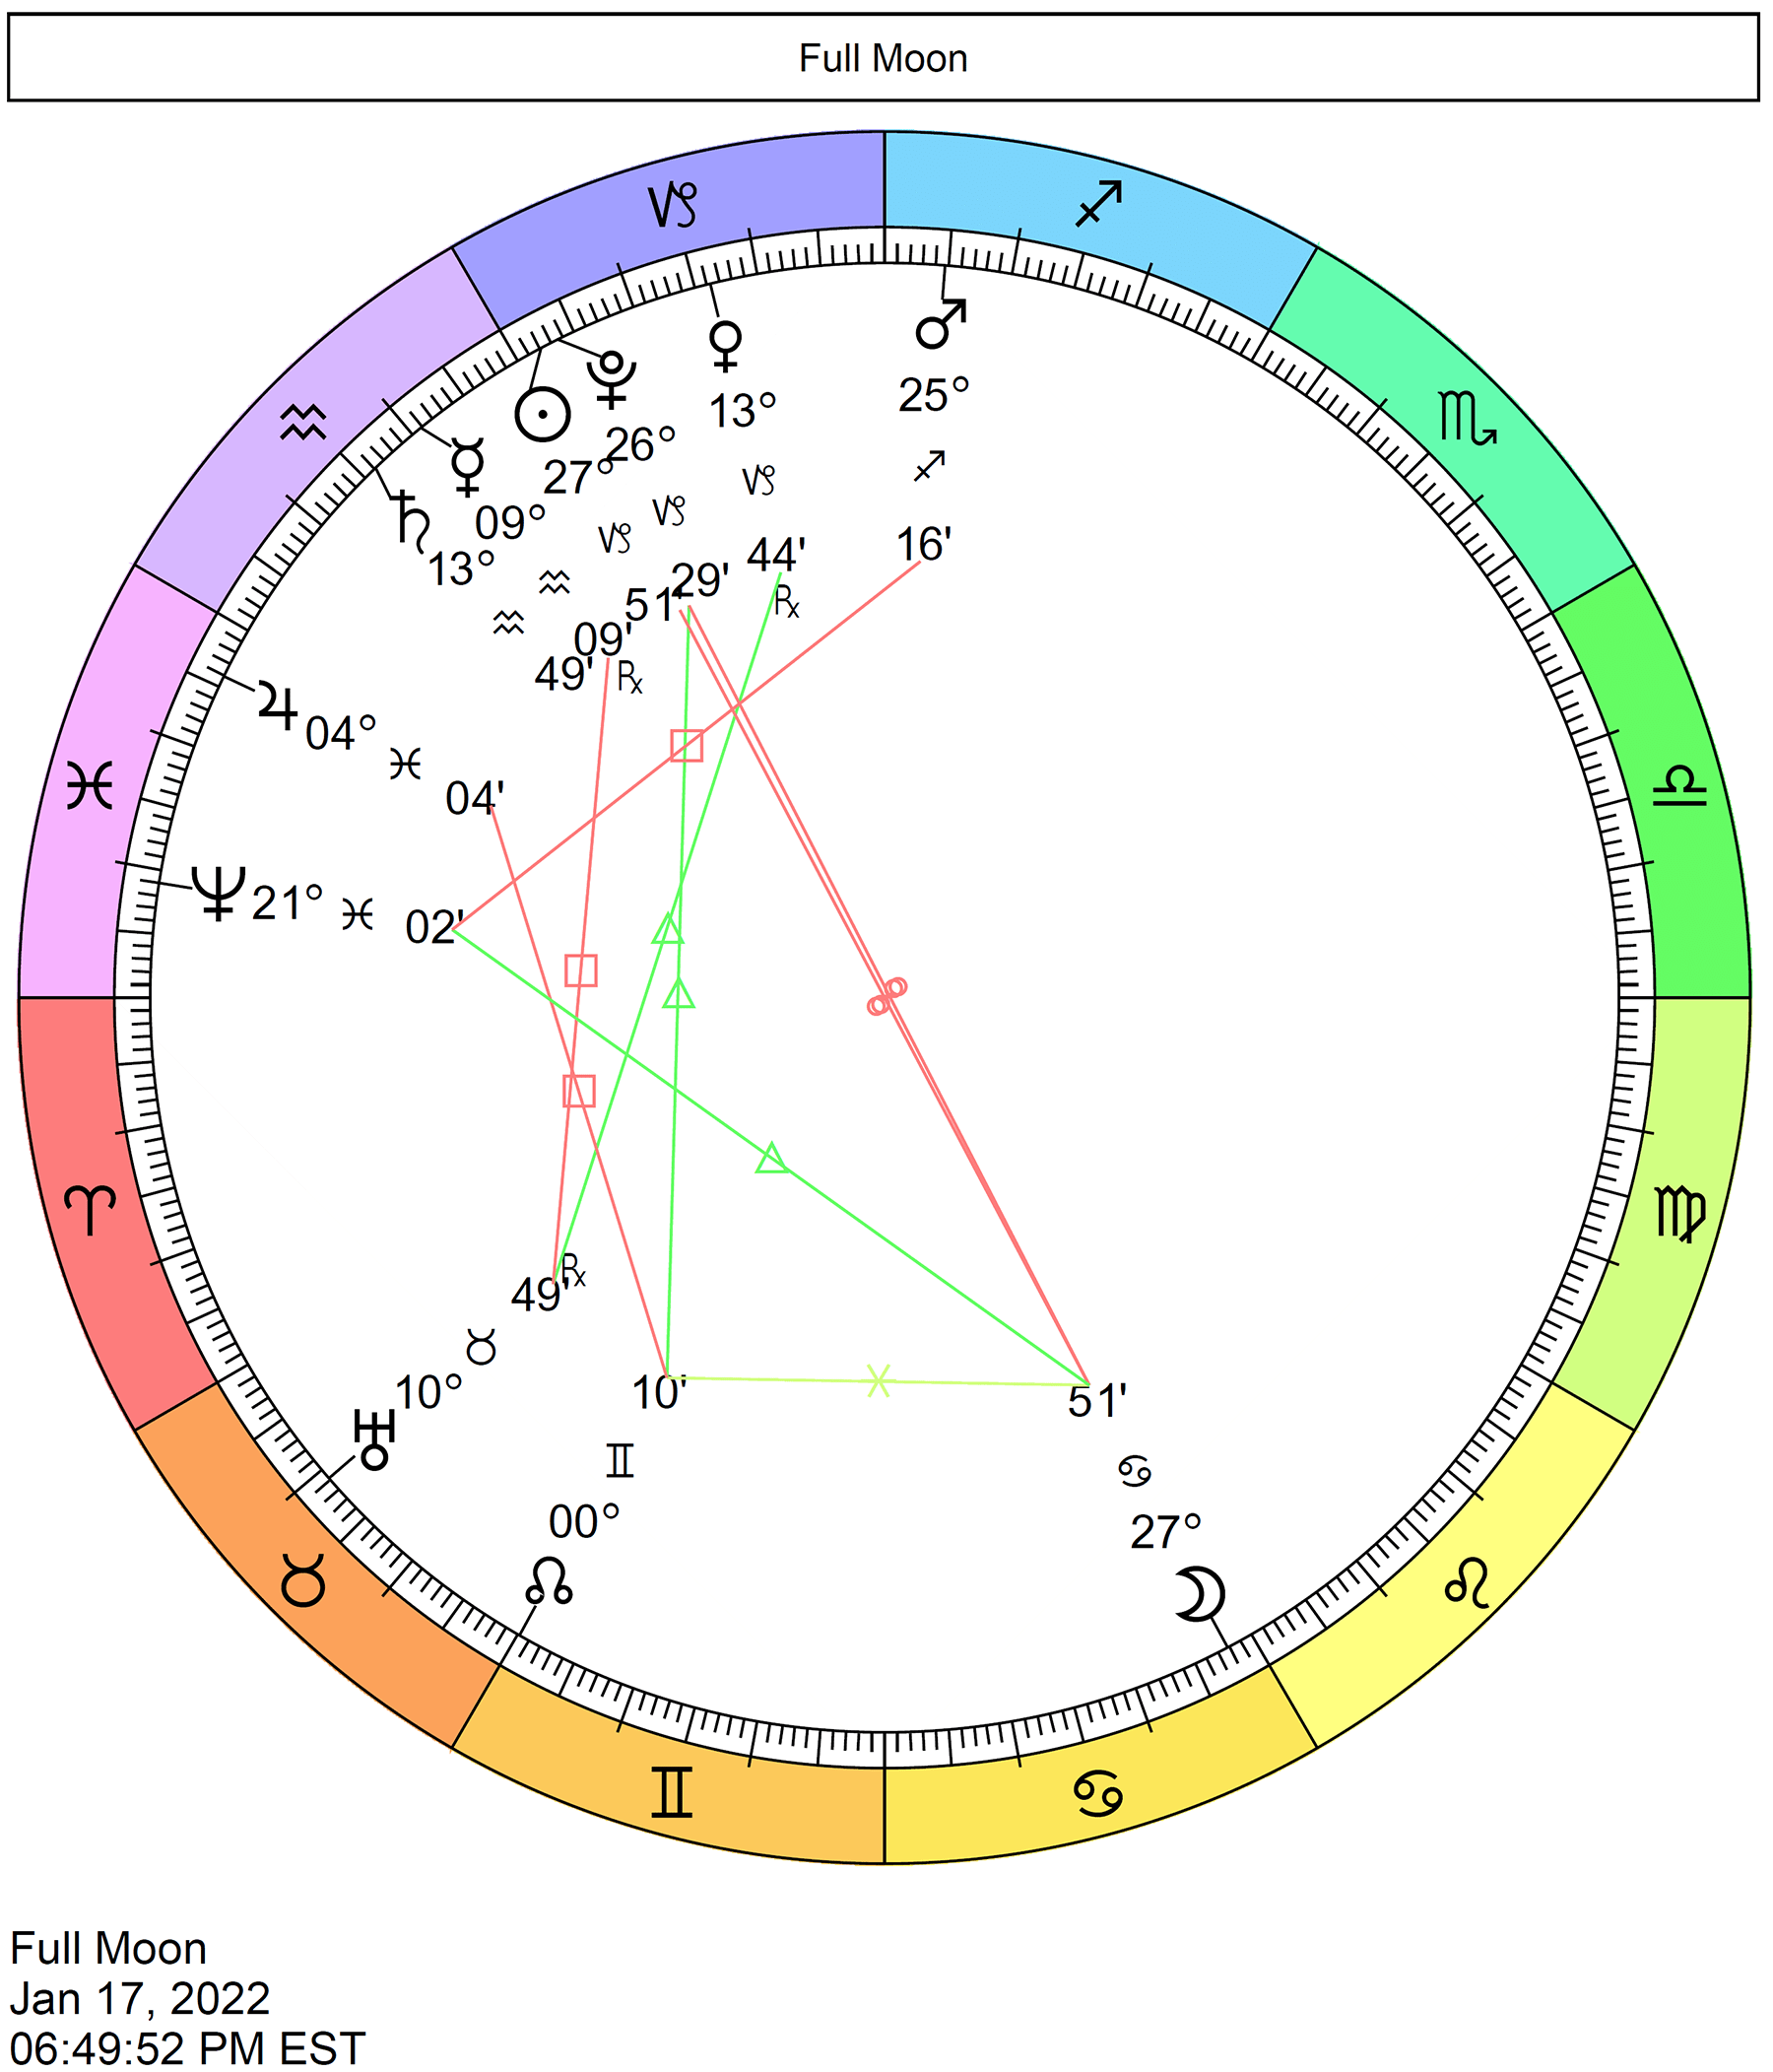 Full Moon in Cancer astrological chart